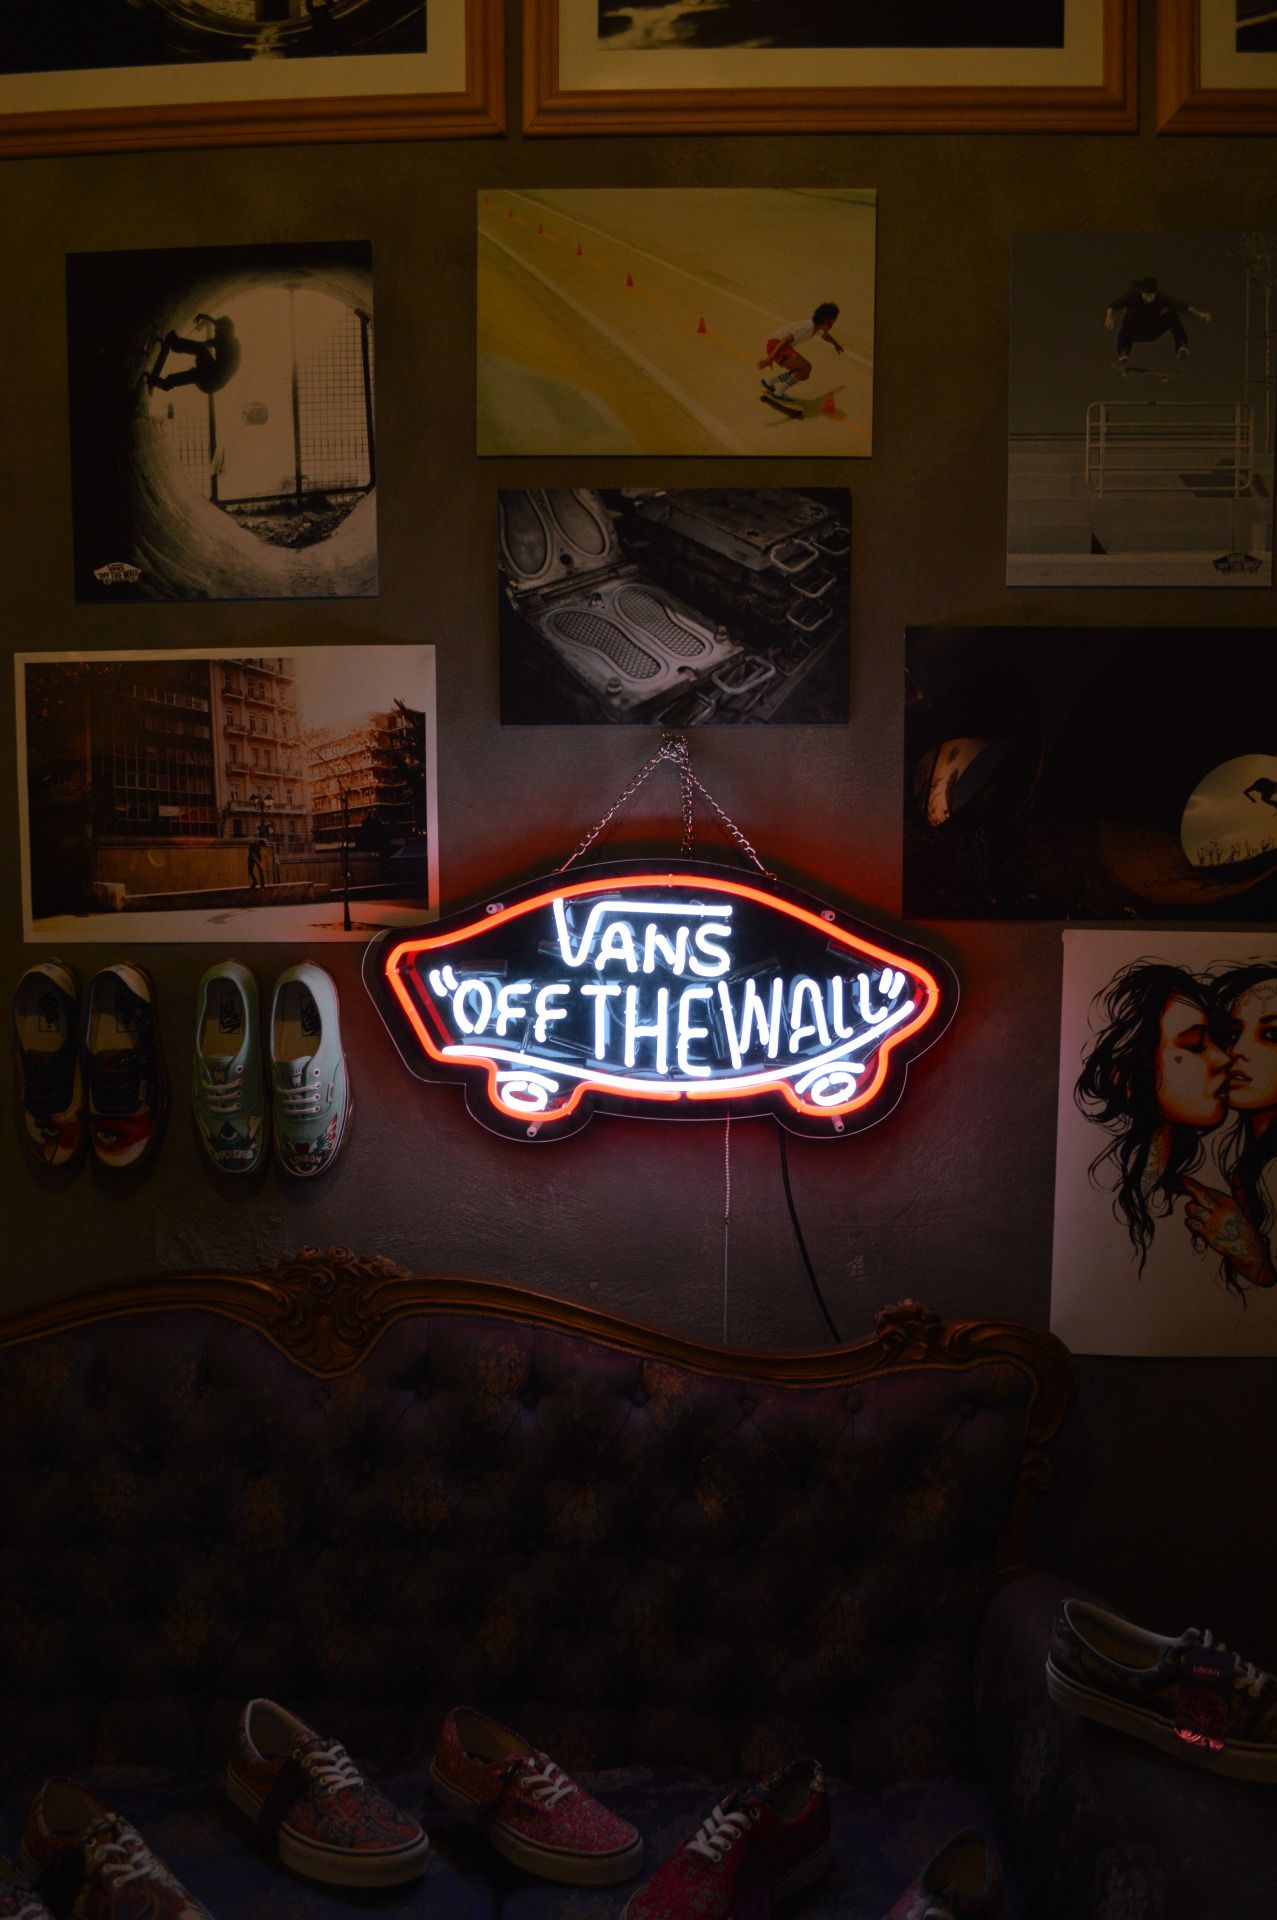 Bedroom Iphone Background Vans Shoes Vans